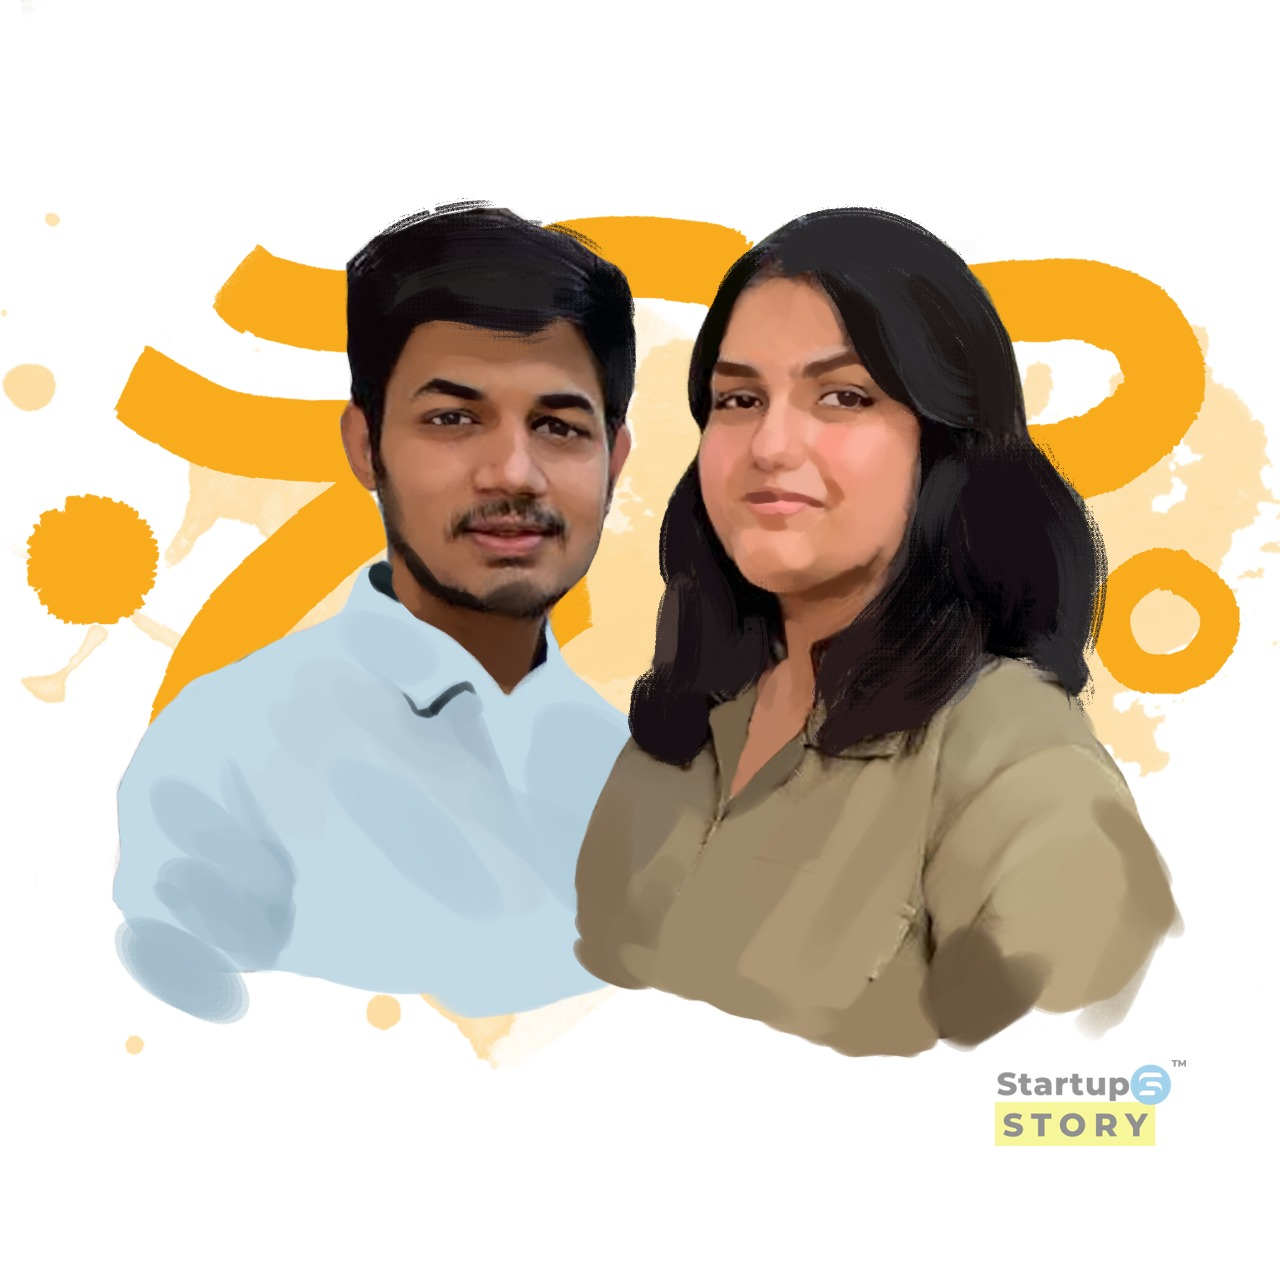 Featured Image Inked Stories Startup story media